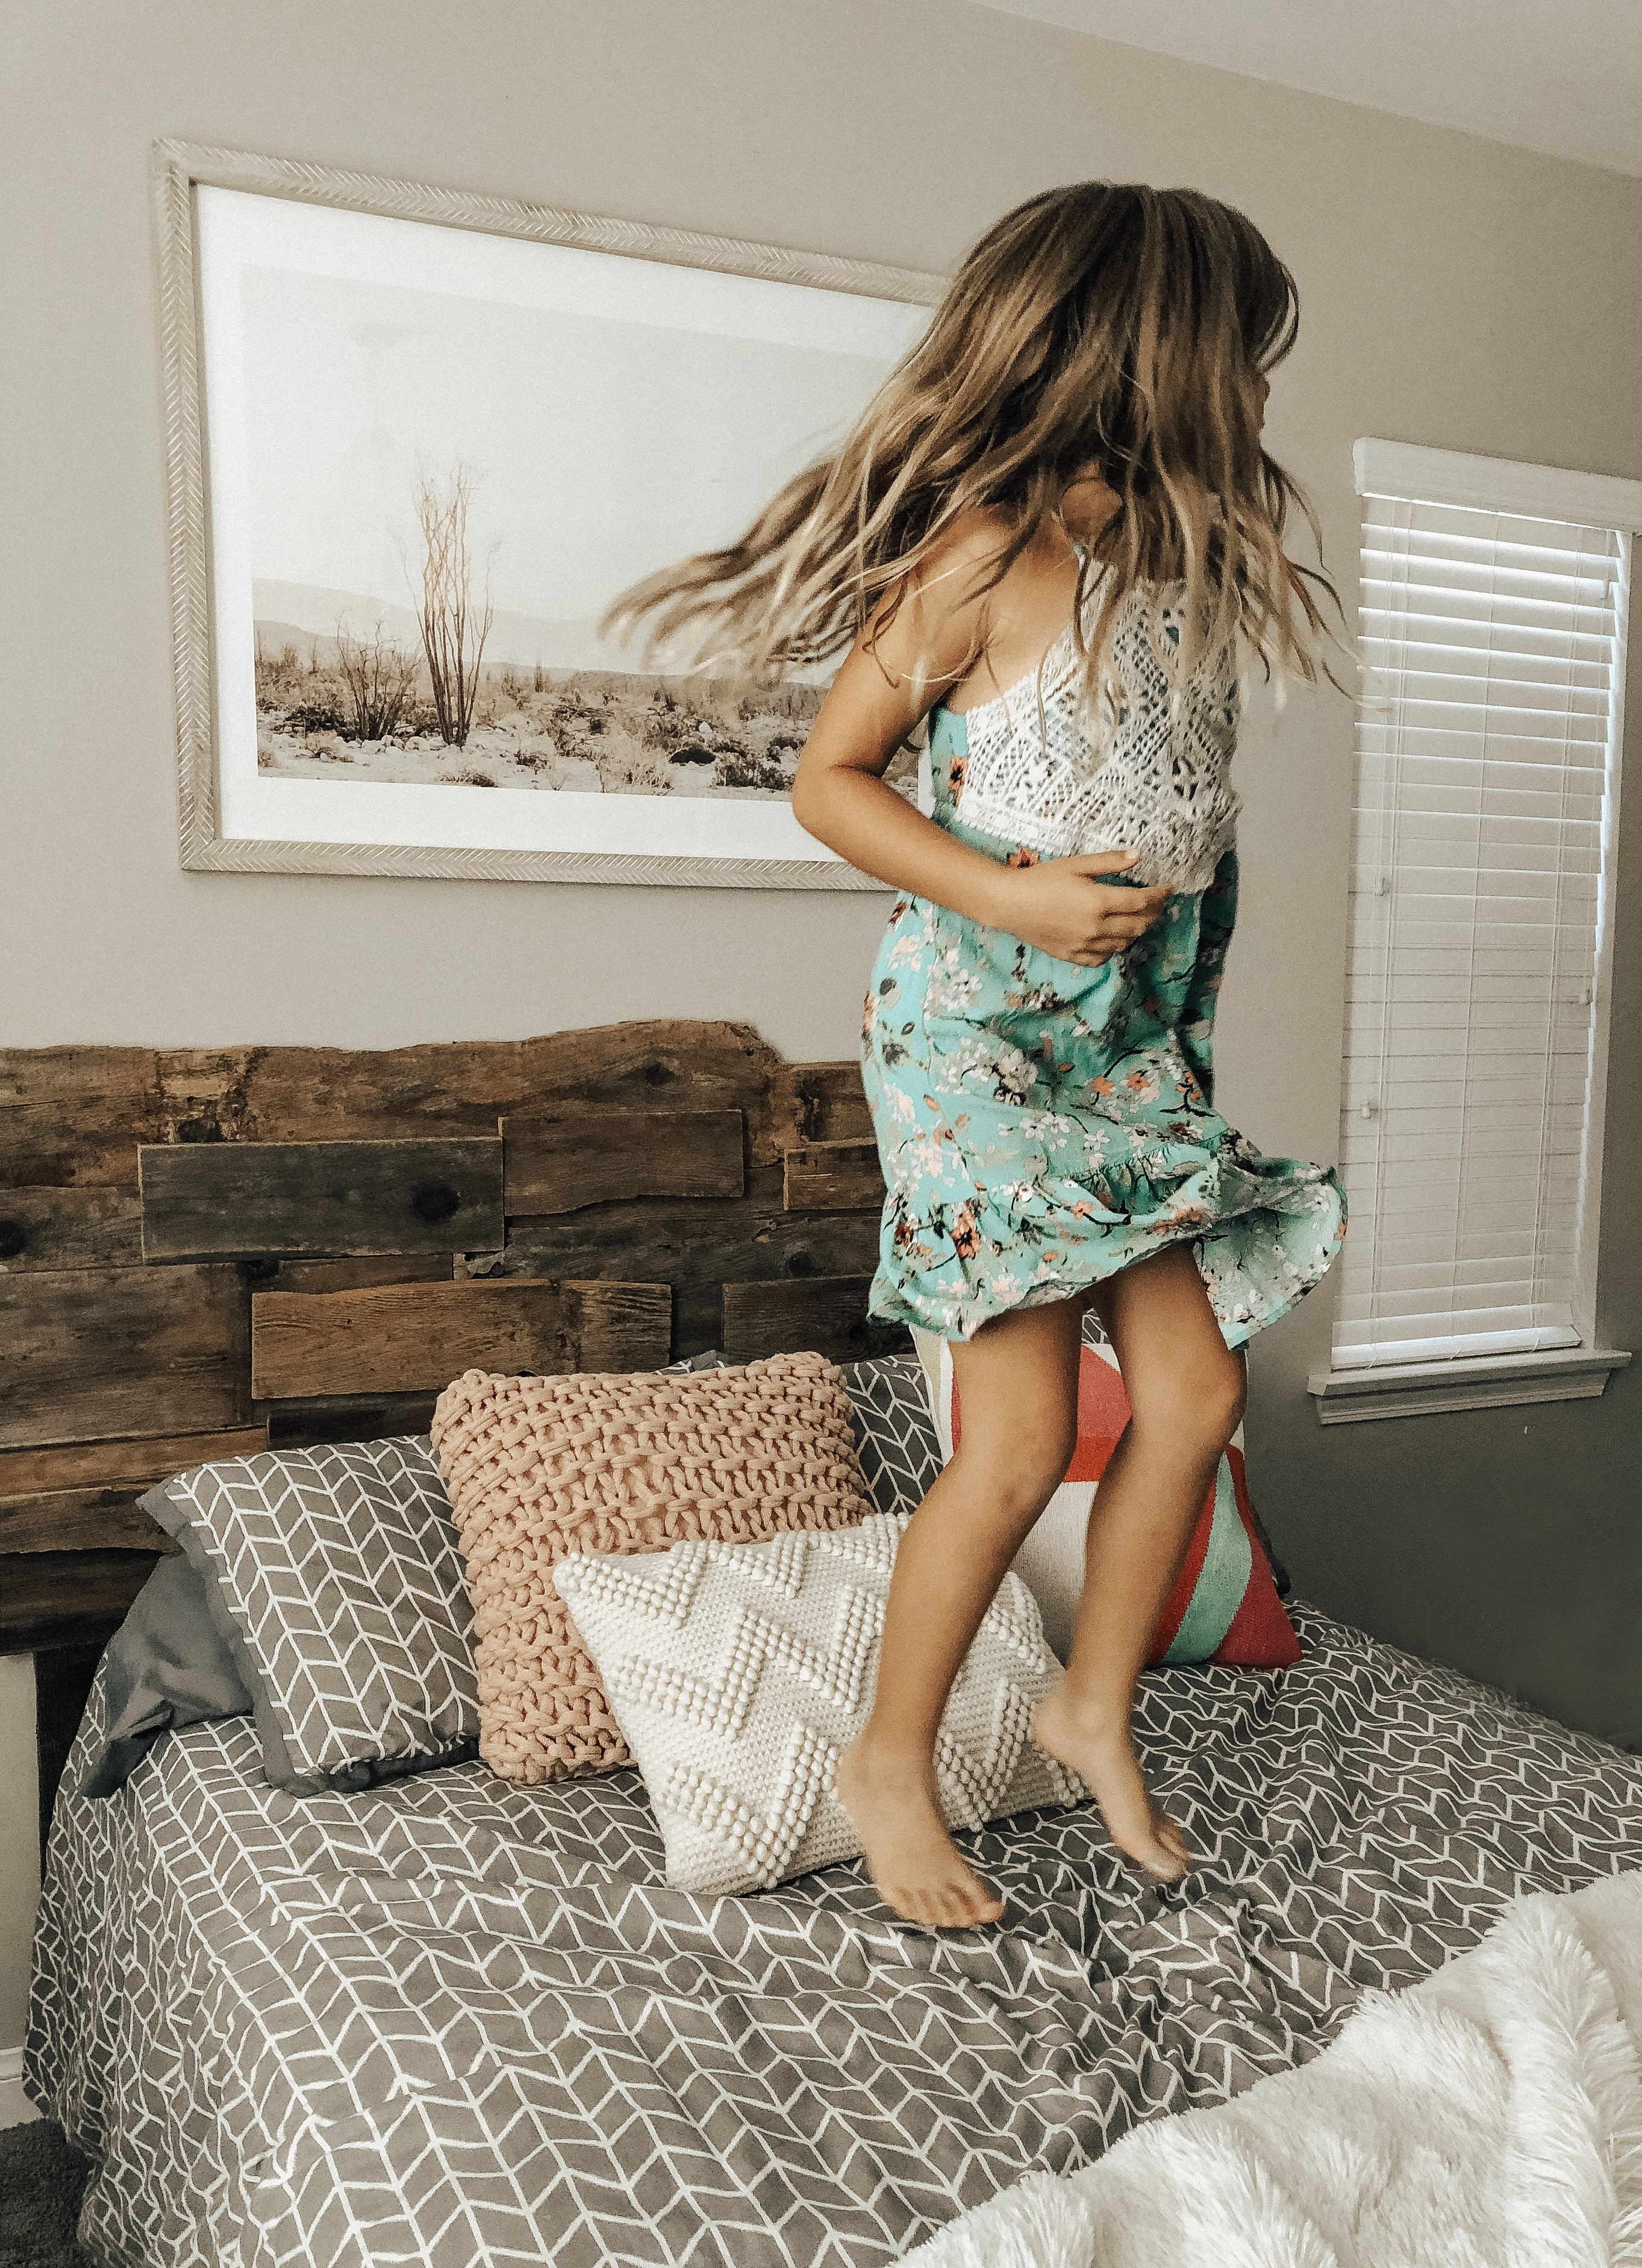 STYLING MY HOME WITH MINTED ART- Jaclyn De Leon Style + Minted art + stylng the home + home decor + wall art + home inspiration + guide to updating your art + art collector + retro style art + interior design + having fun with kids + decorating with kids + jumping on the bed